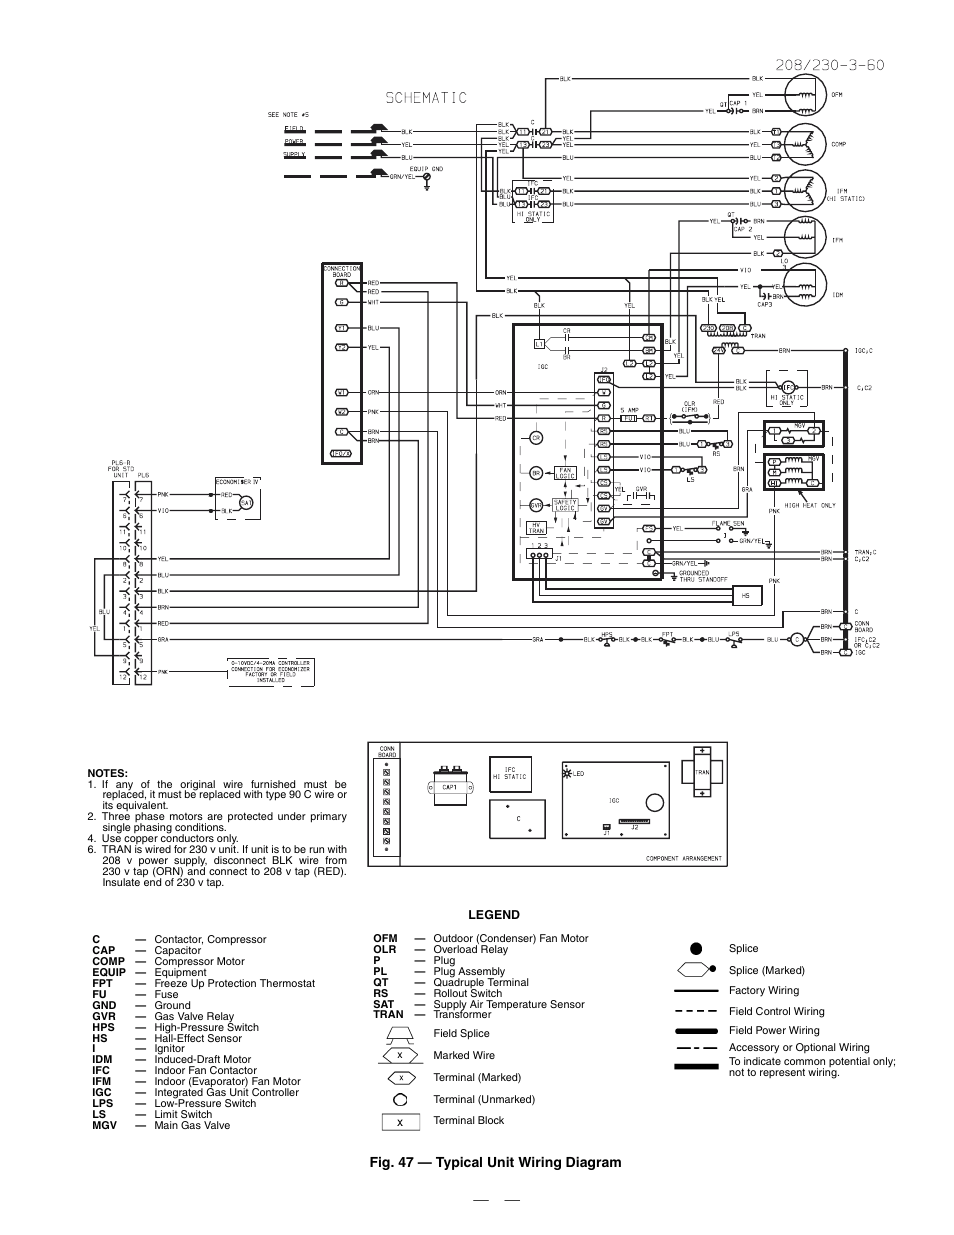 medium resolution of wiring diagram for bryant condenser relay 41 wiring residential a c condenser wiring diagram residential a c condenser wiring diagram